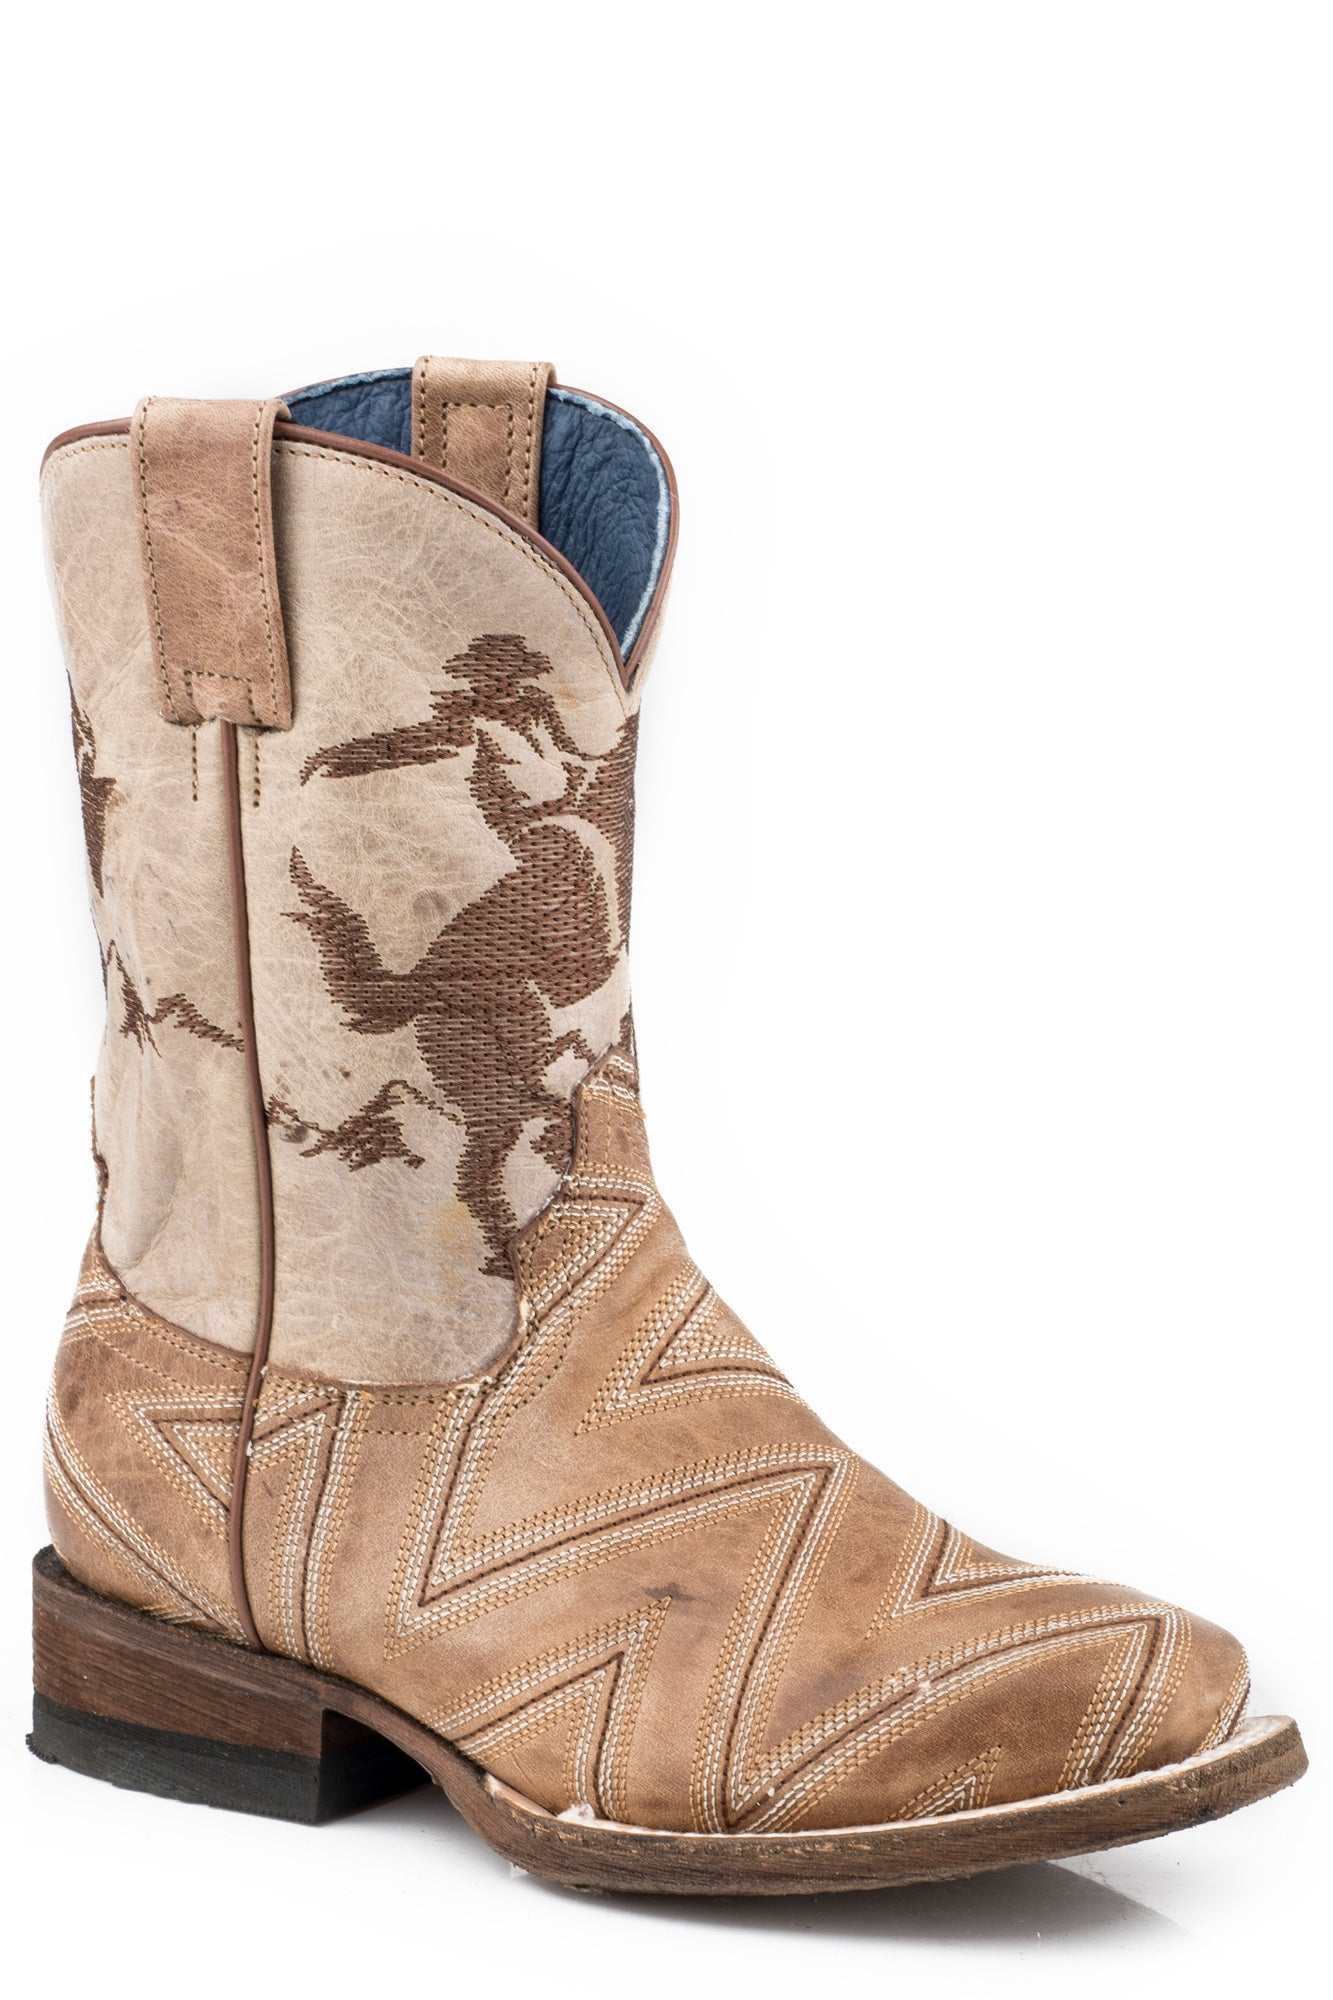 Roper Youth Boys Burnished Leather Arlo Jr Horse Rider Cowboy Boots The Western Company